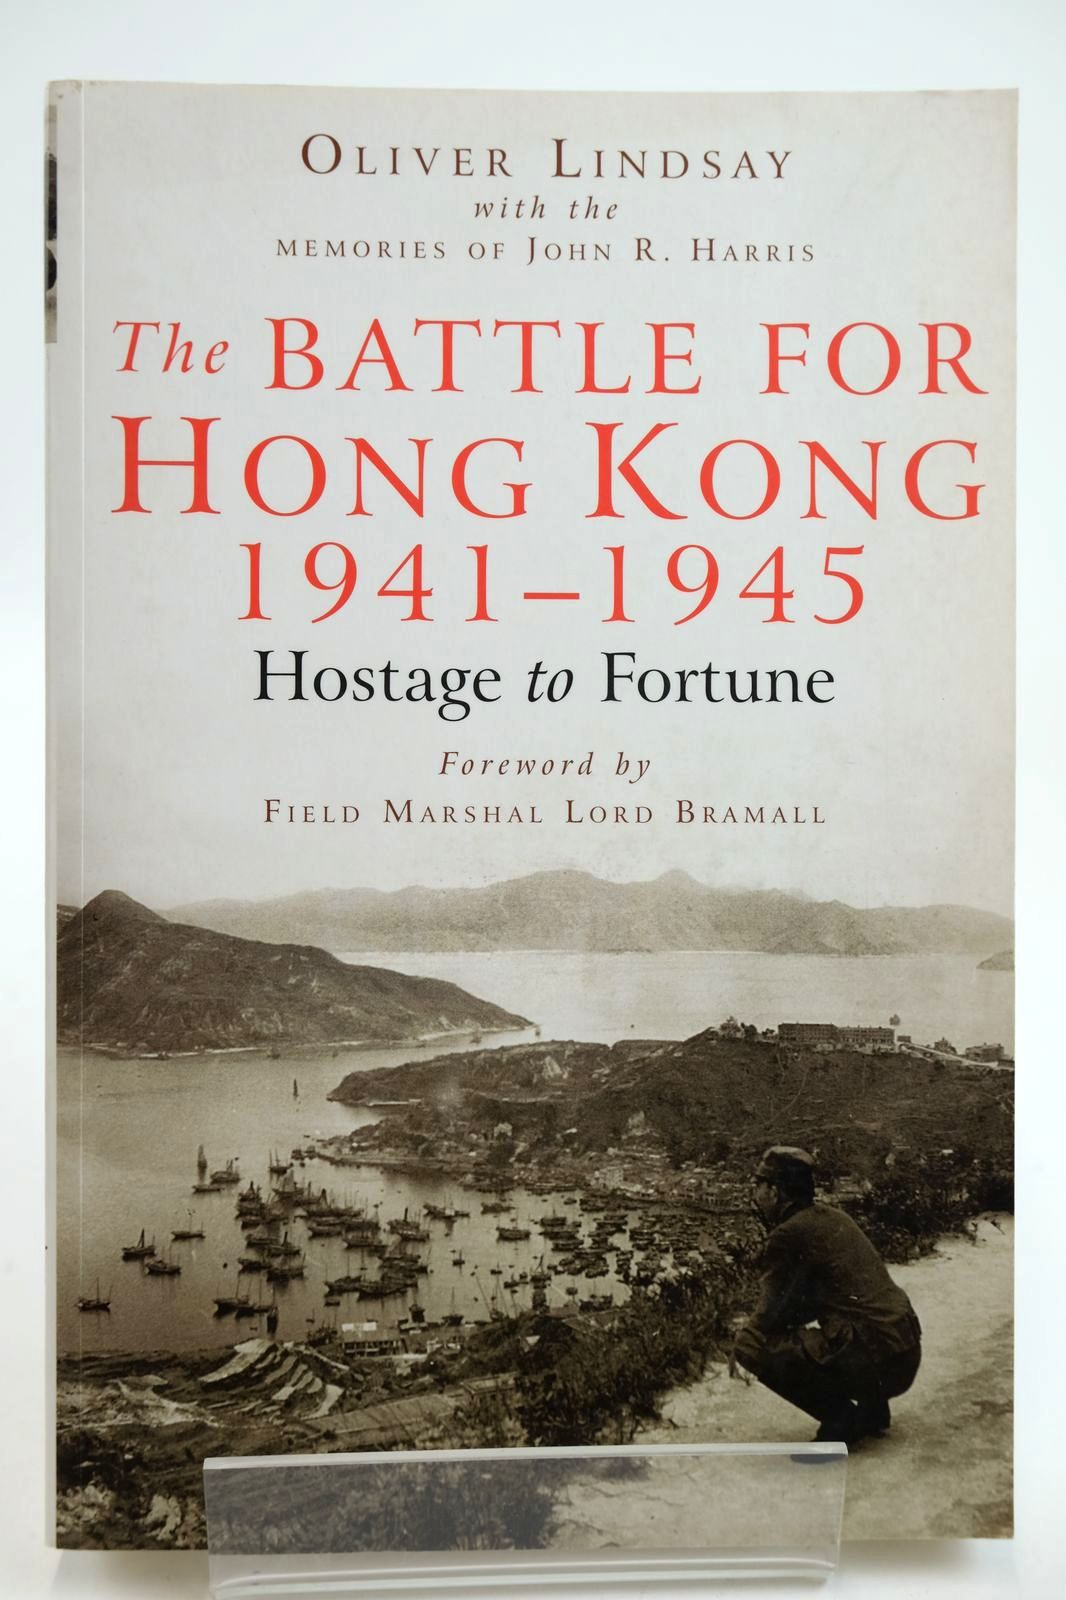 Photo of THE BATTLE FOR HONG KONG 1941-1945 HOSTAGE TO FORTUNE written by Lindsay, Oliver published by Spellmount Ltd. (STOCK CODE: 2132639)  for sale by Stella & Rose's Books